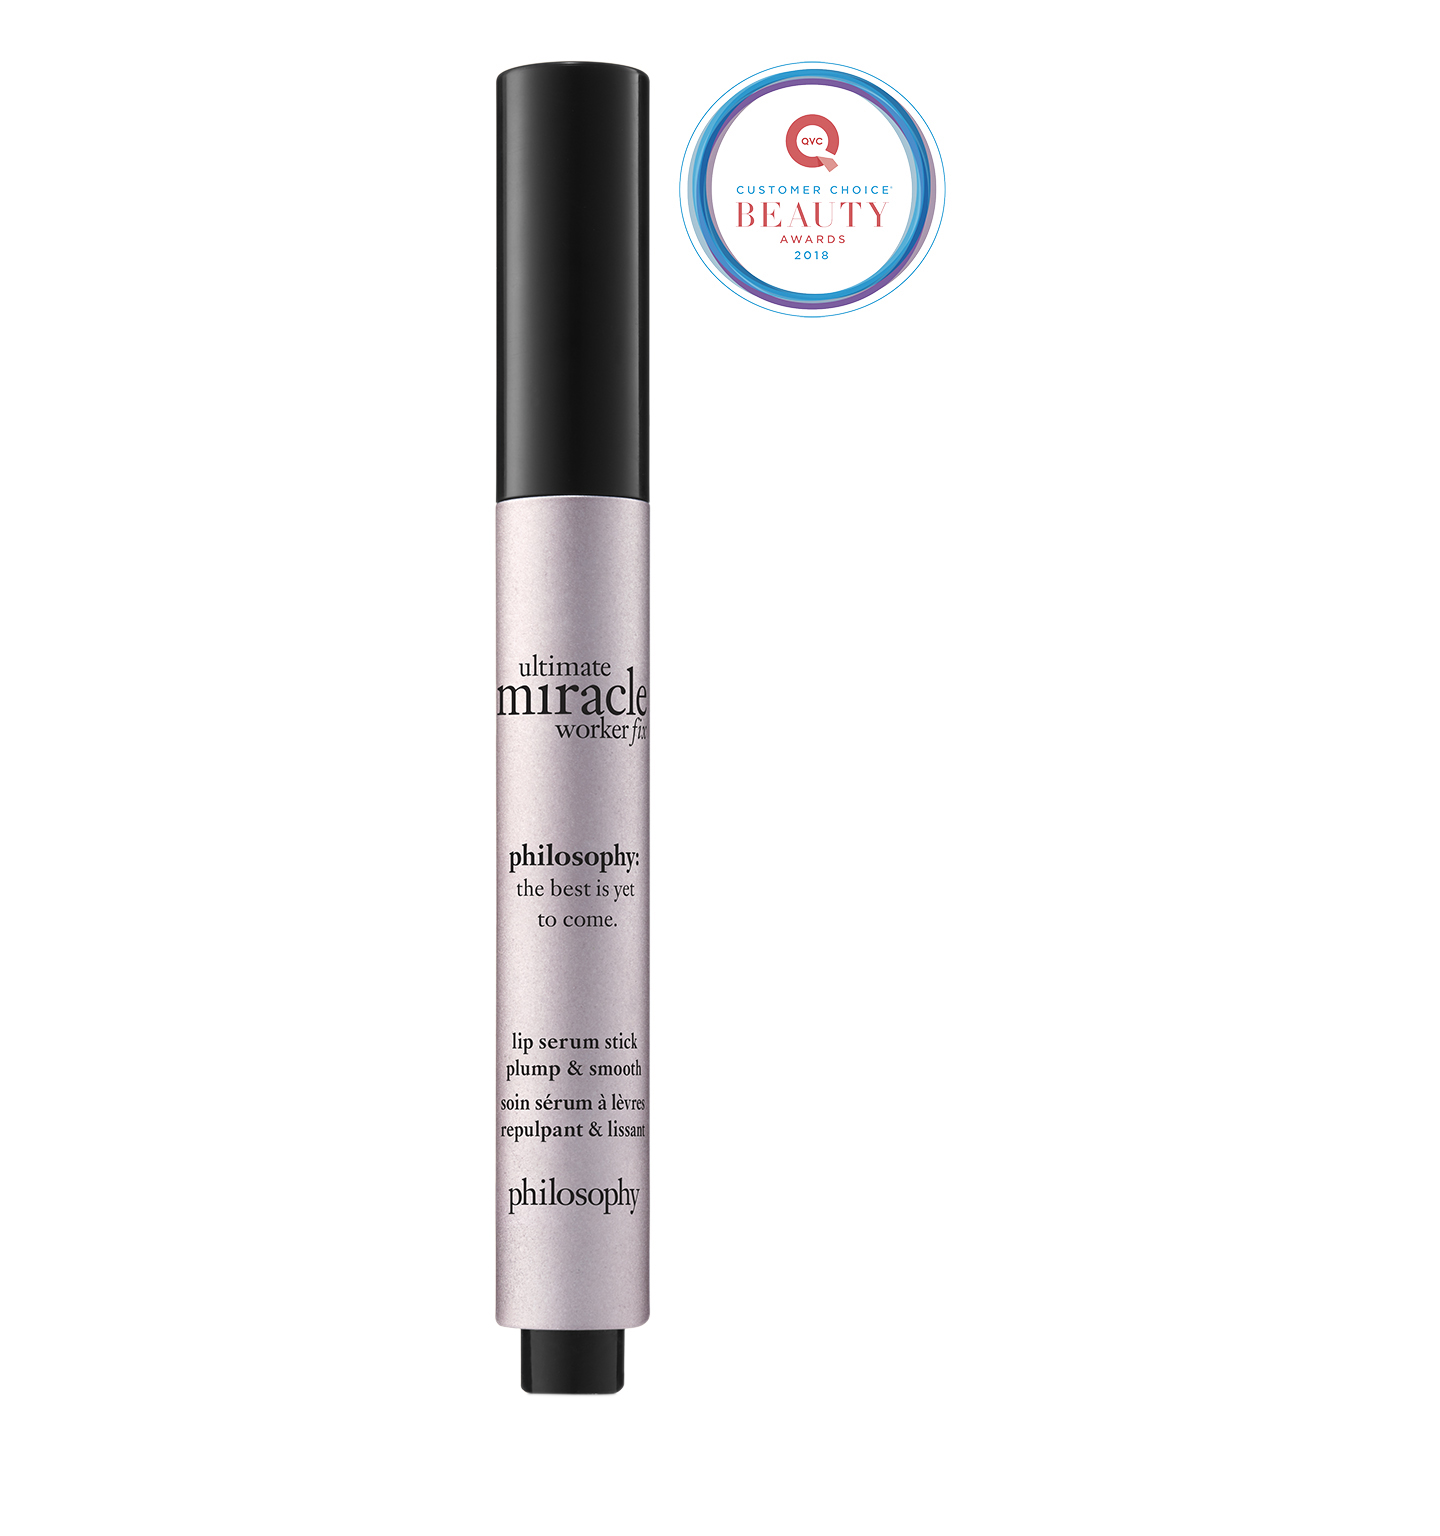 ultimate miracle worker fix lip serum stick